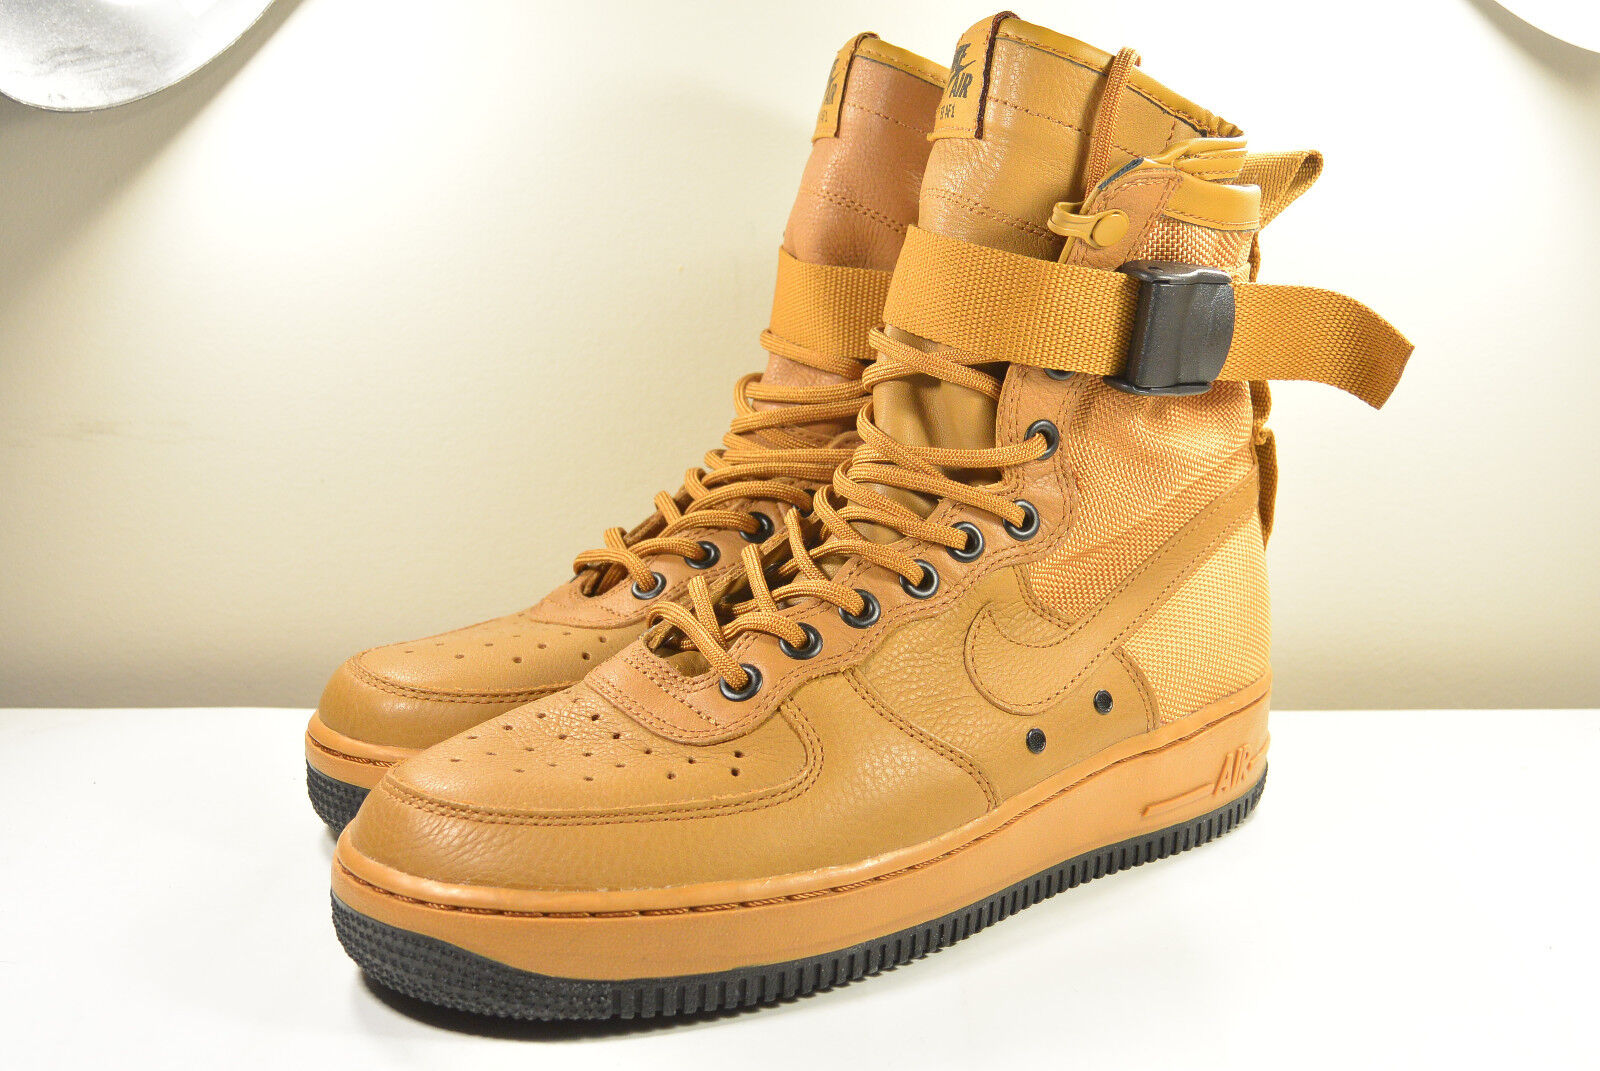 DS NIKE 2016 SF AF1 SPECIAL FEILD AIR FORCE 1 DESERT ORCHRE M7 / W8.5 SUPREME